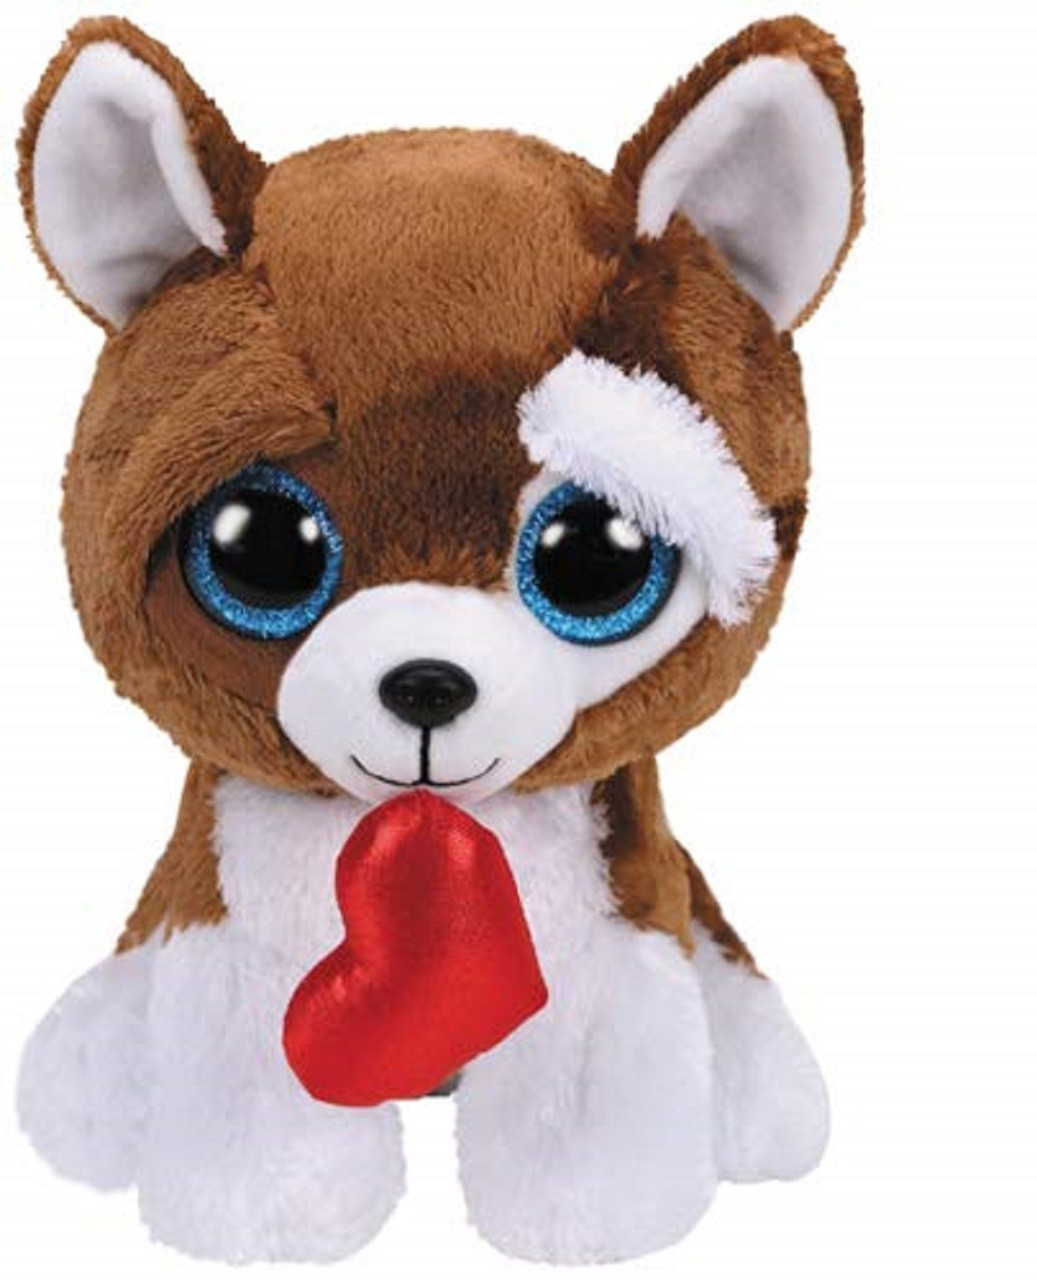 Plush Toy - Smootches - Beanie Boos - 10 Inch Medium